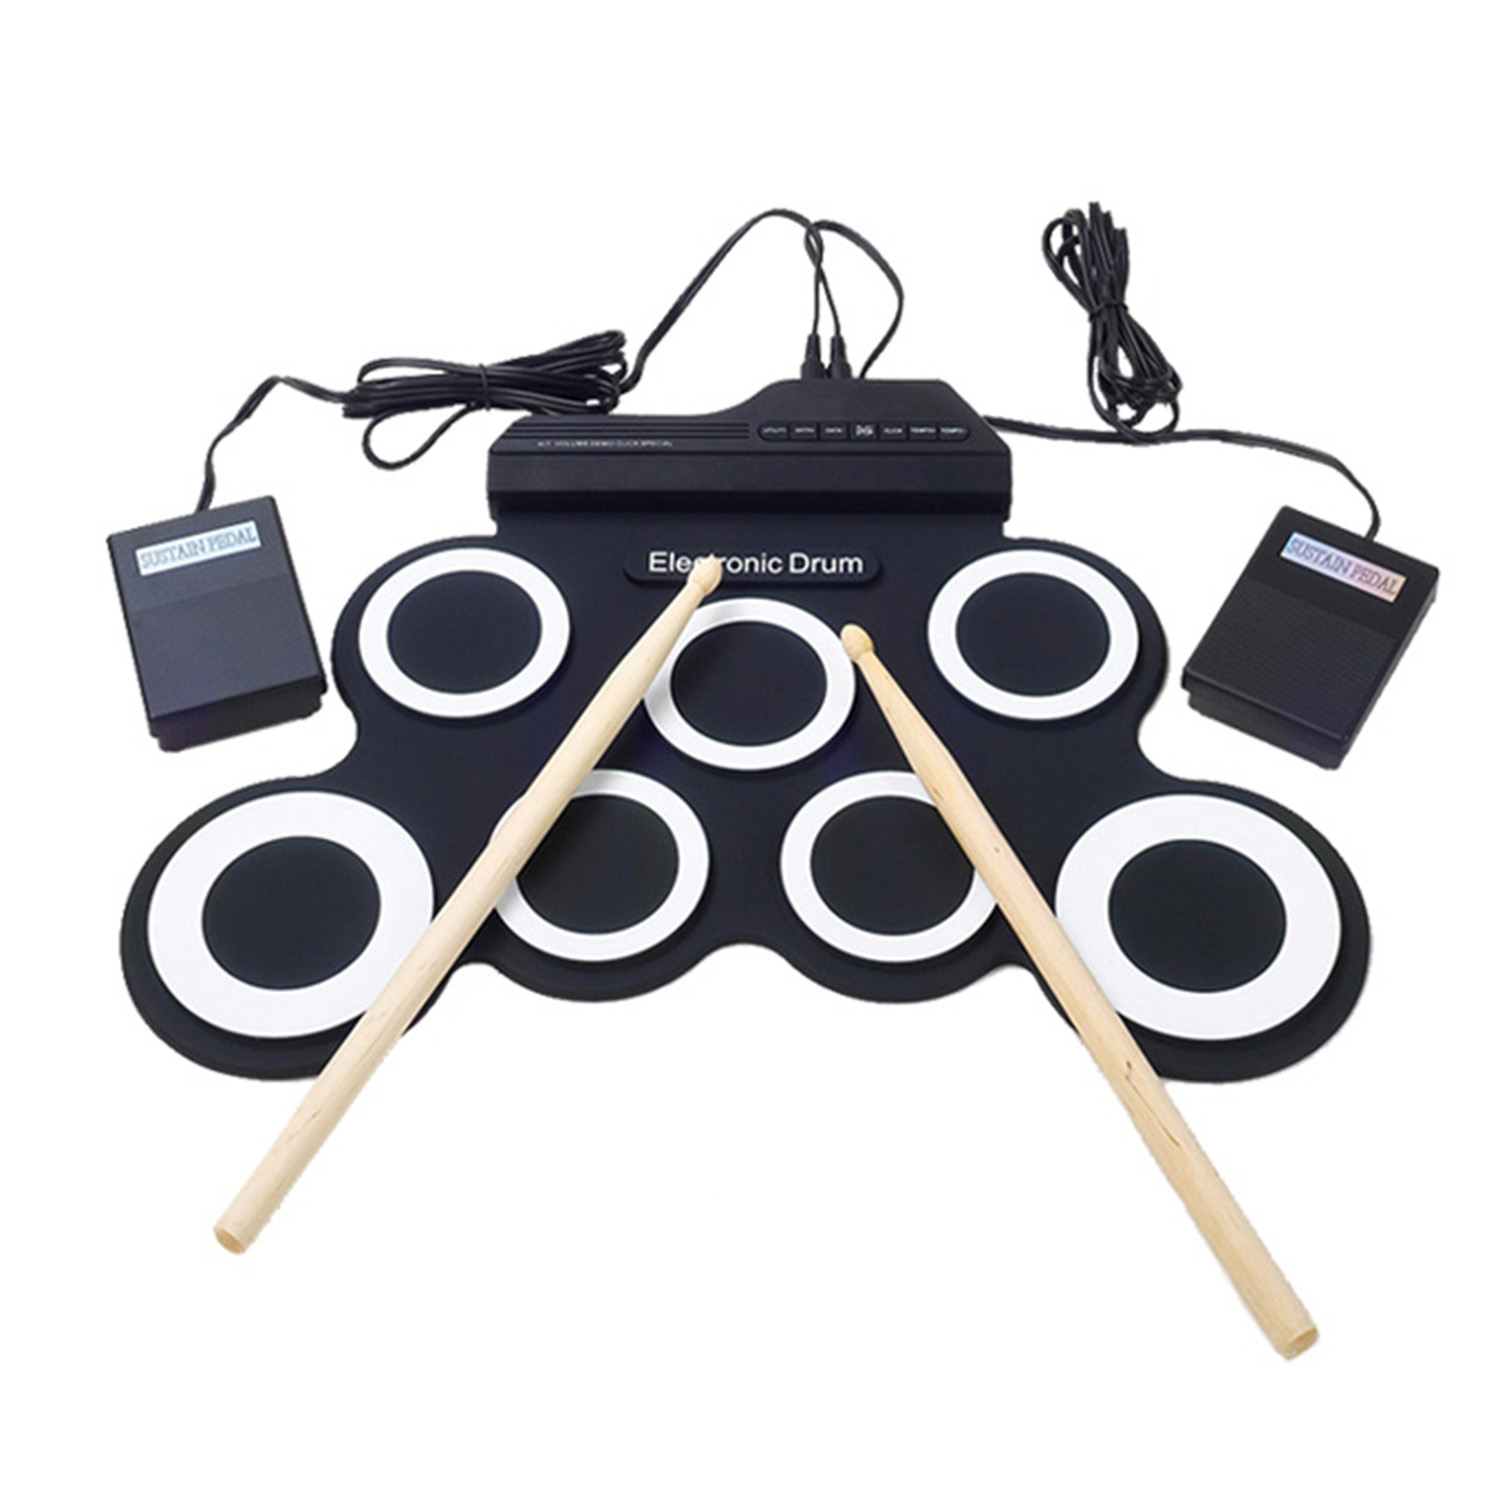 HLBY Electronic Drum Set 7 Electronic Drum 7 Tone 8 Demo Song 7 Drum Pads Metronome